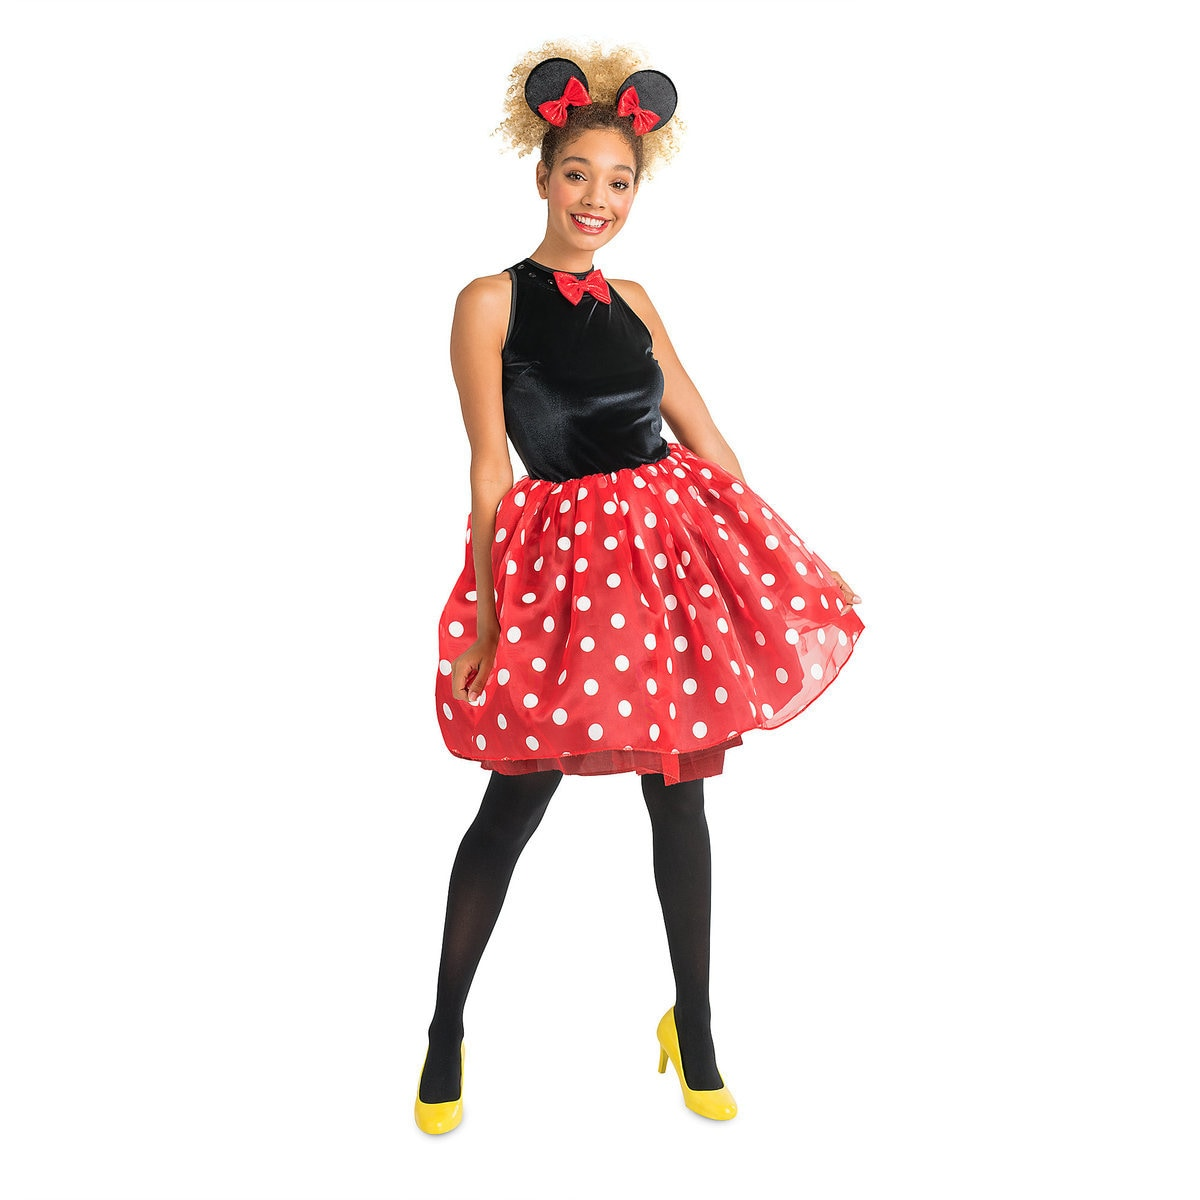 c8a29563c Product Image of Minnie Mouse Costume Tutu with Hair Clips for Juniors # 1